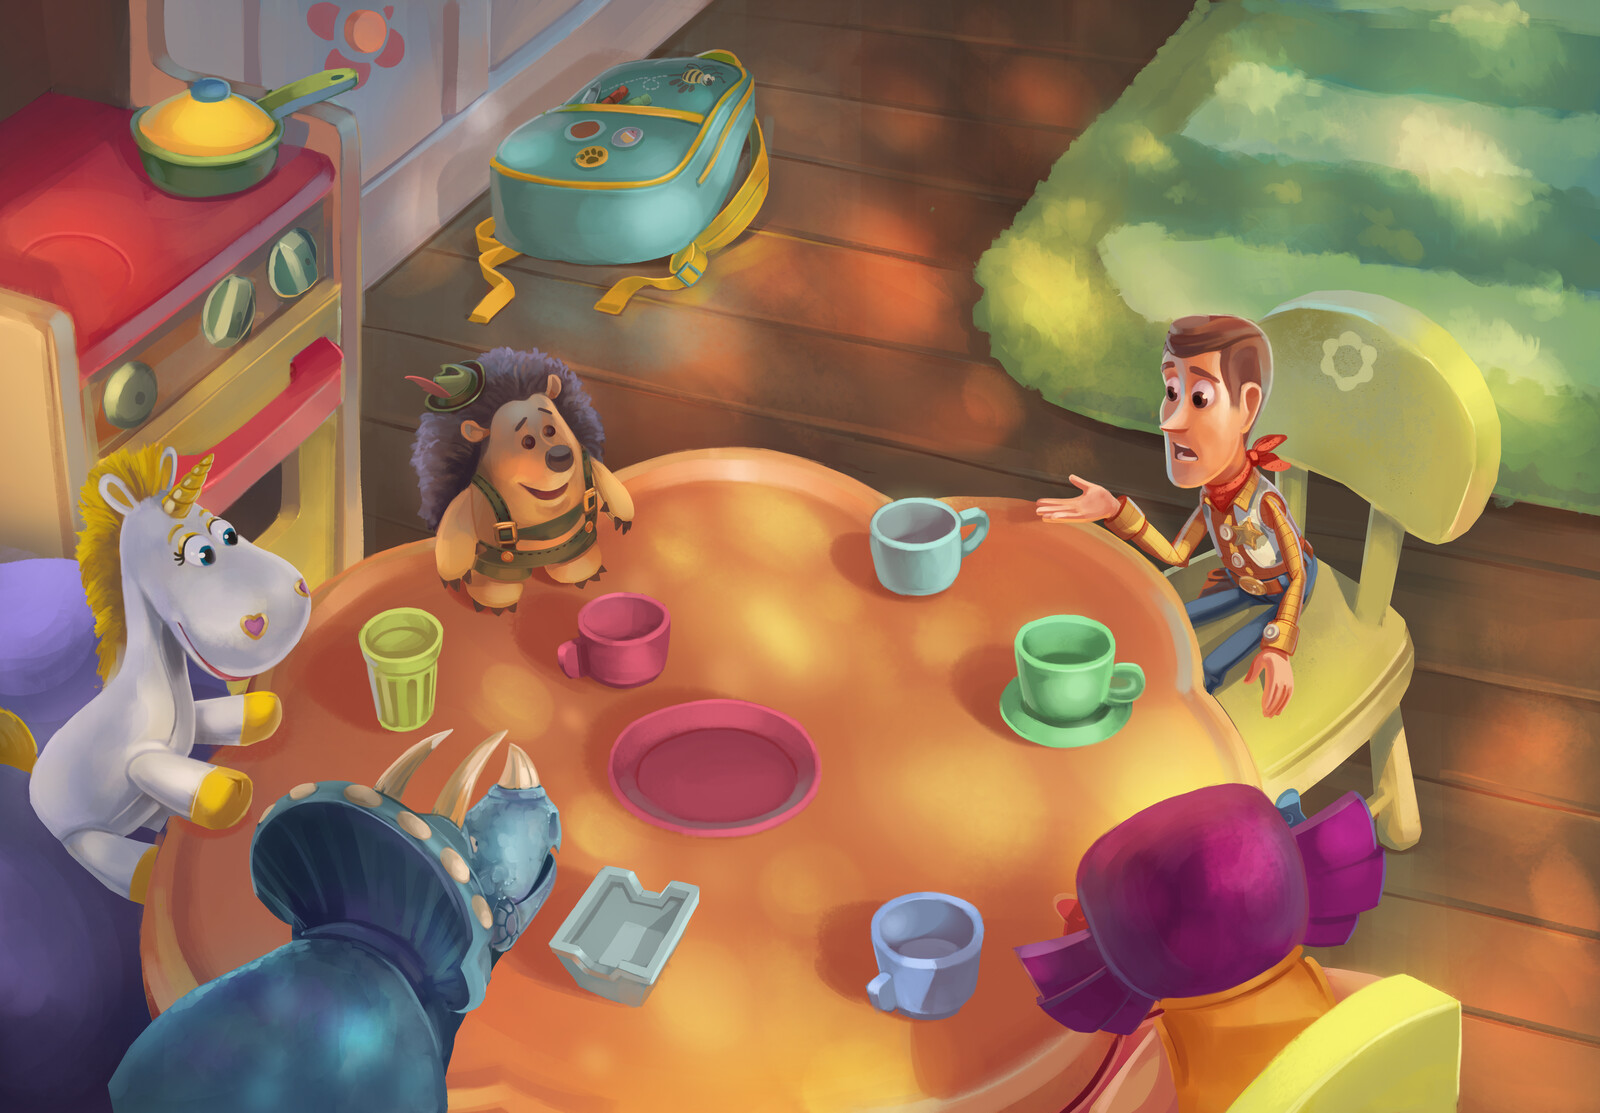 Color Tests I did a while ago for a storybook.